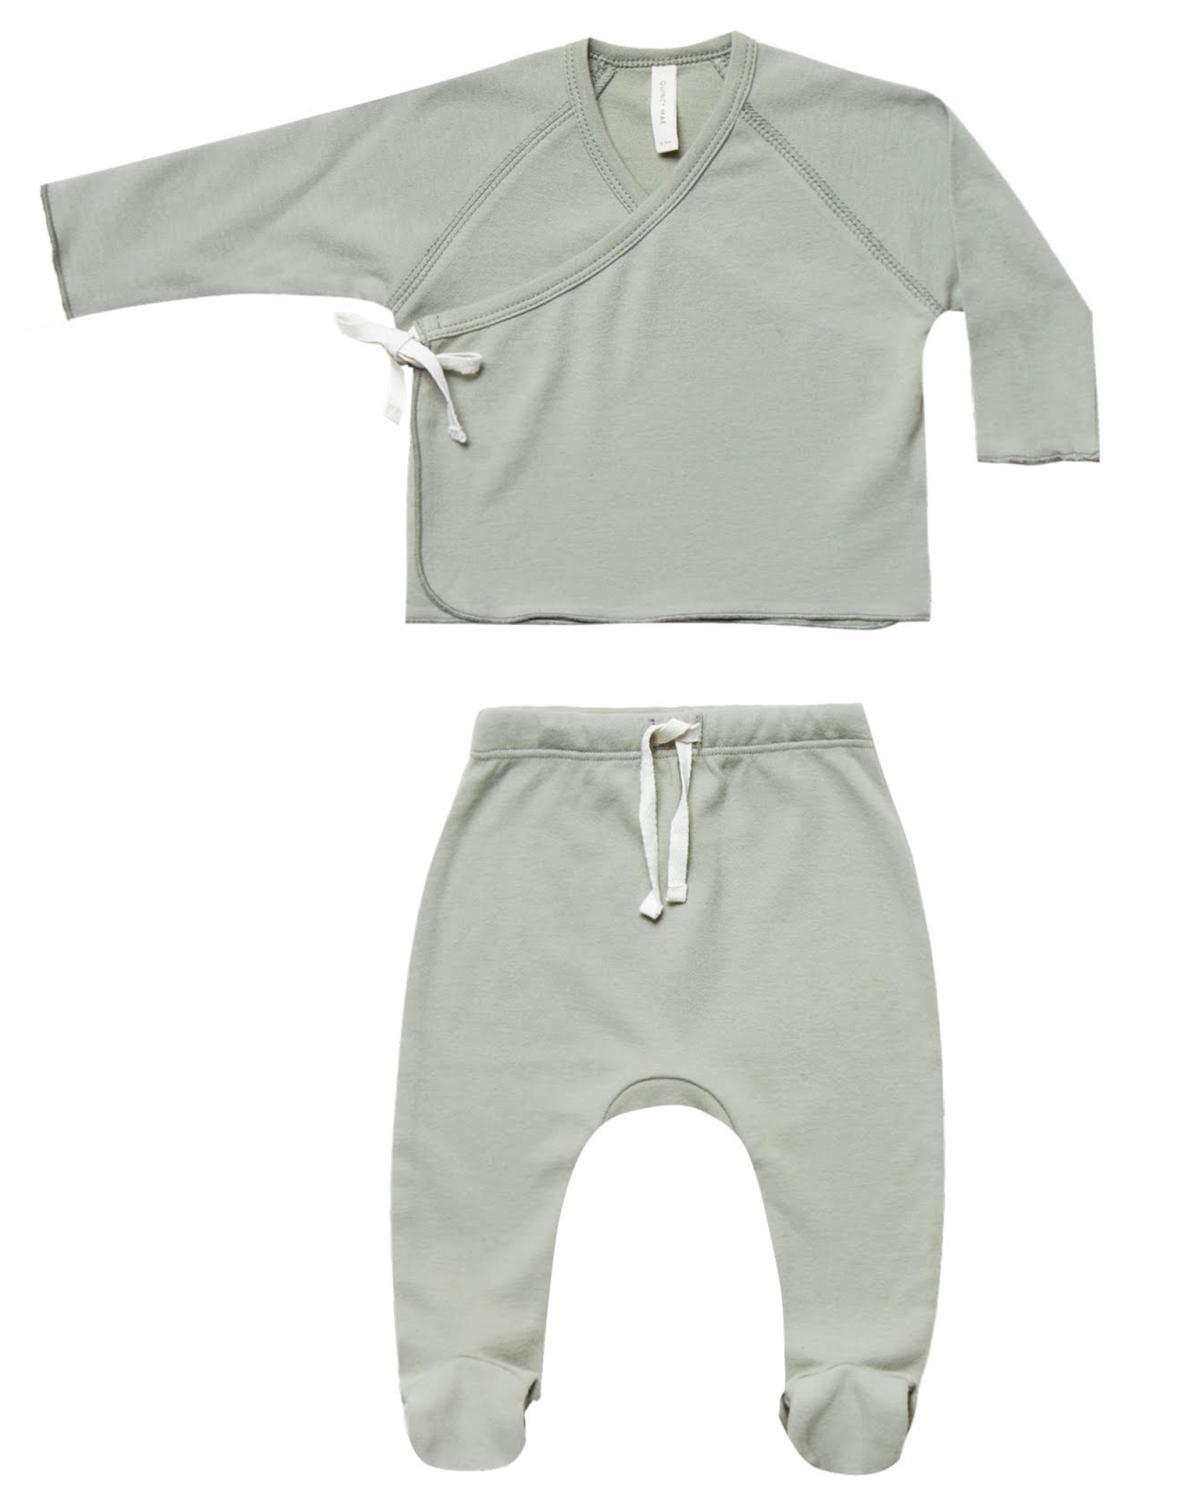 Little quincy mae layette nb kimono top + footed pant set in sage